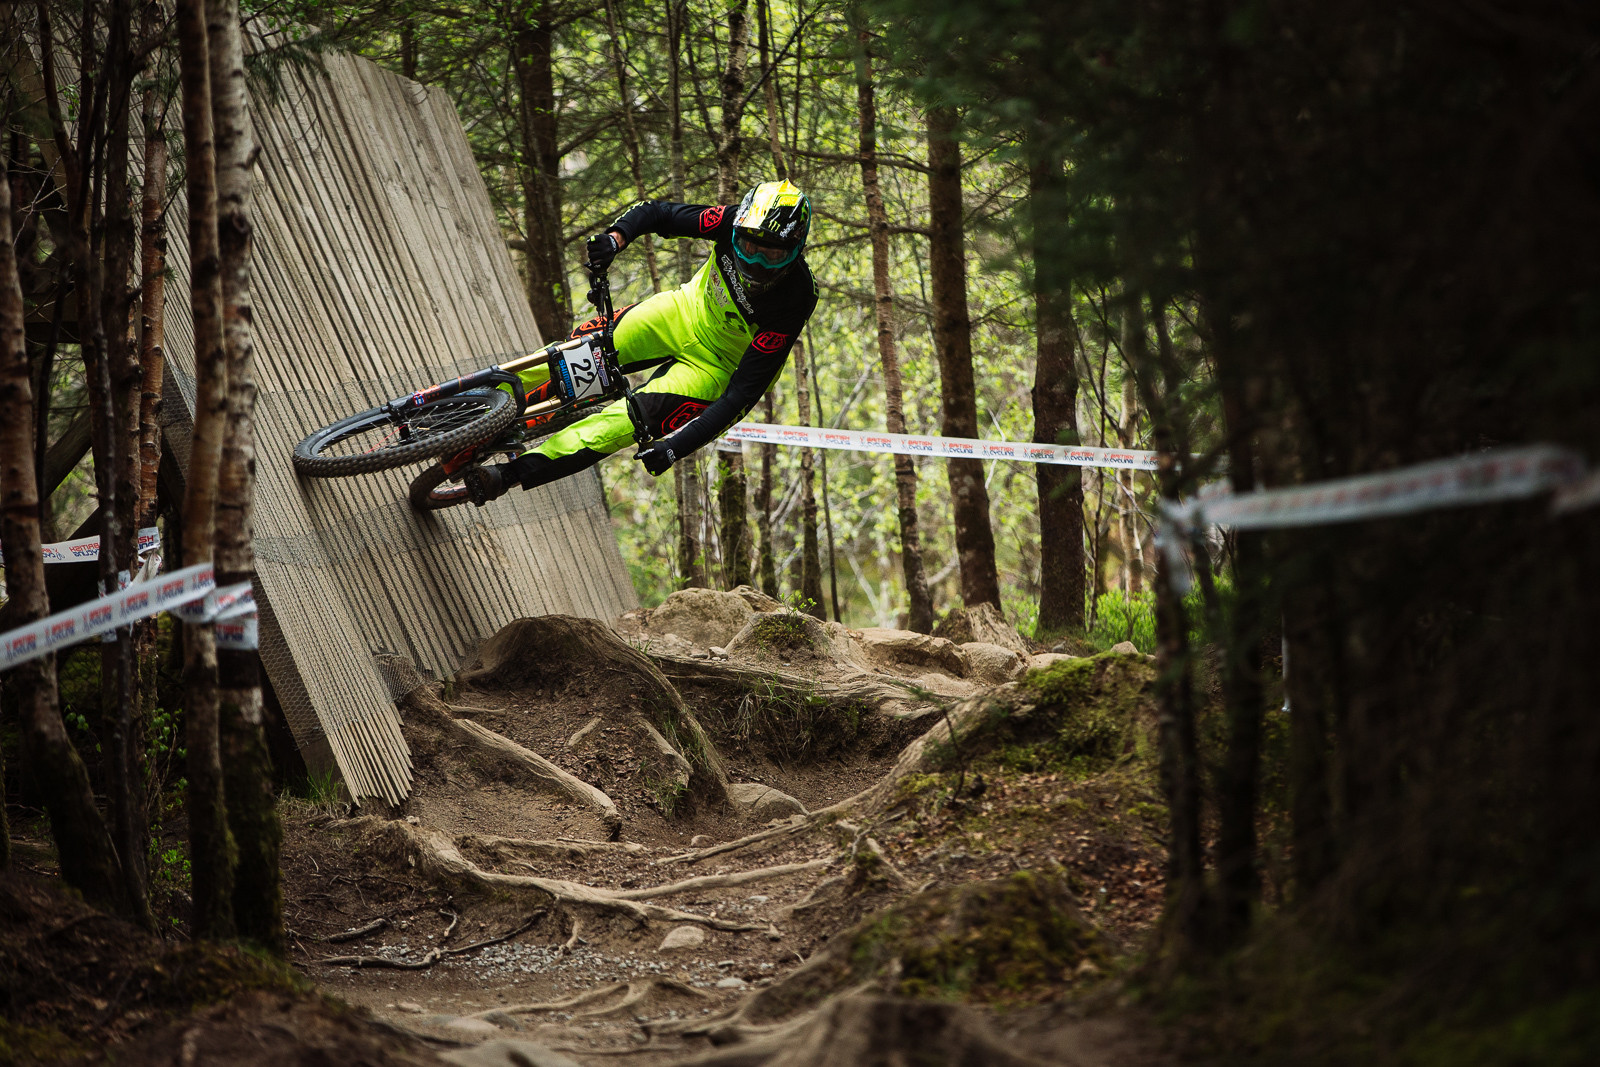 Brendan Fairclough, Fort William BDS - Fort William DH Action from the British Downhill Series - Mountain Biking Pictures - Vital MTB